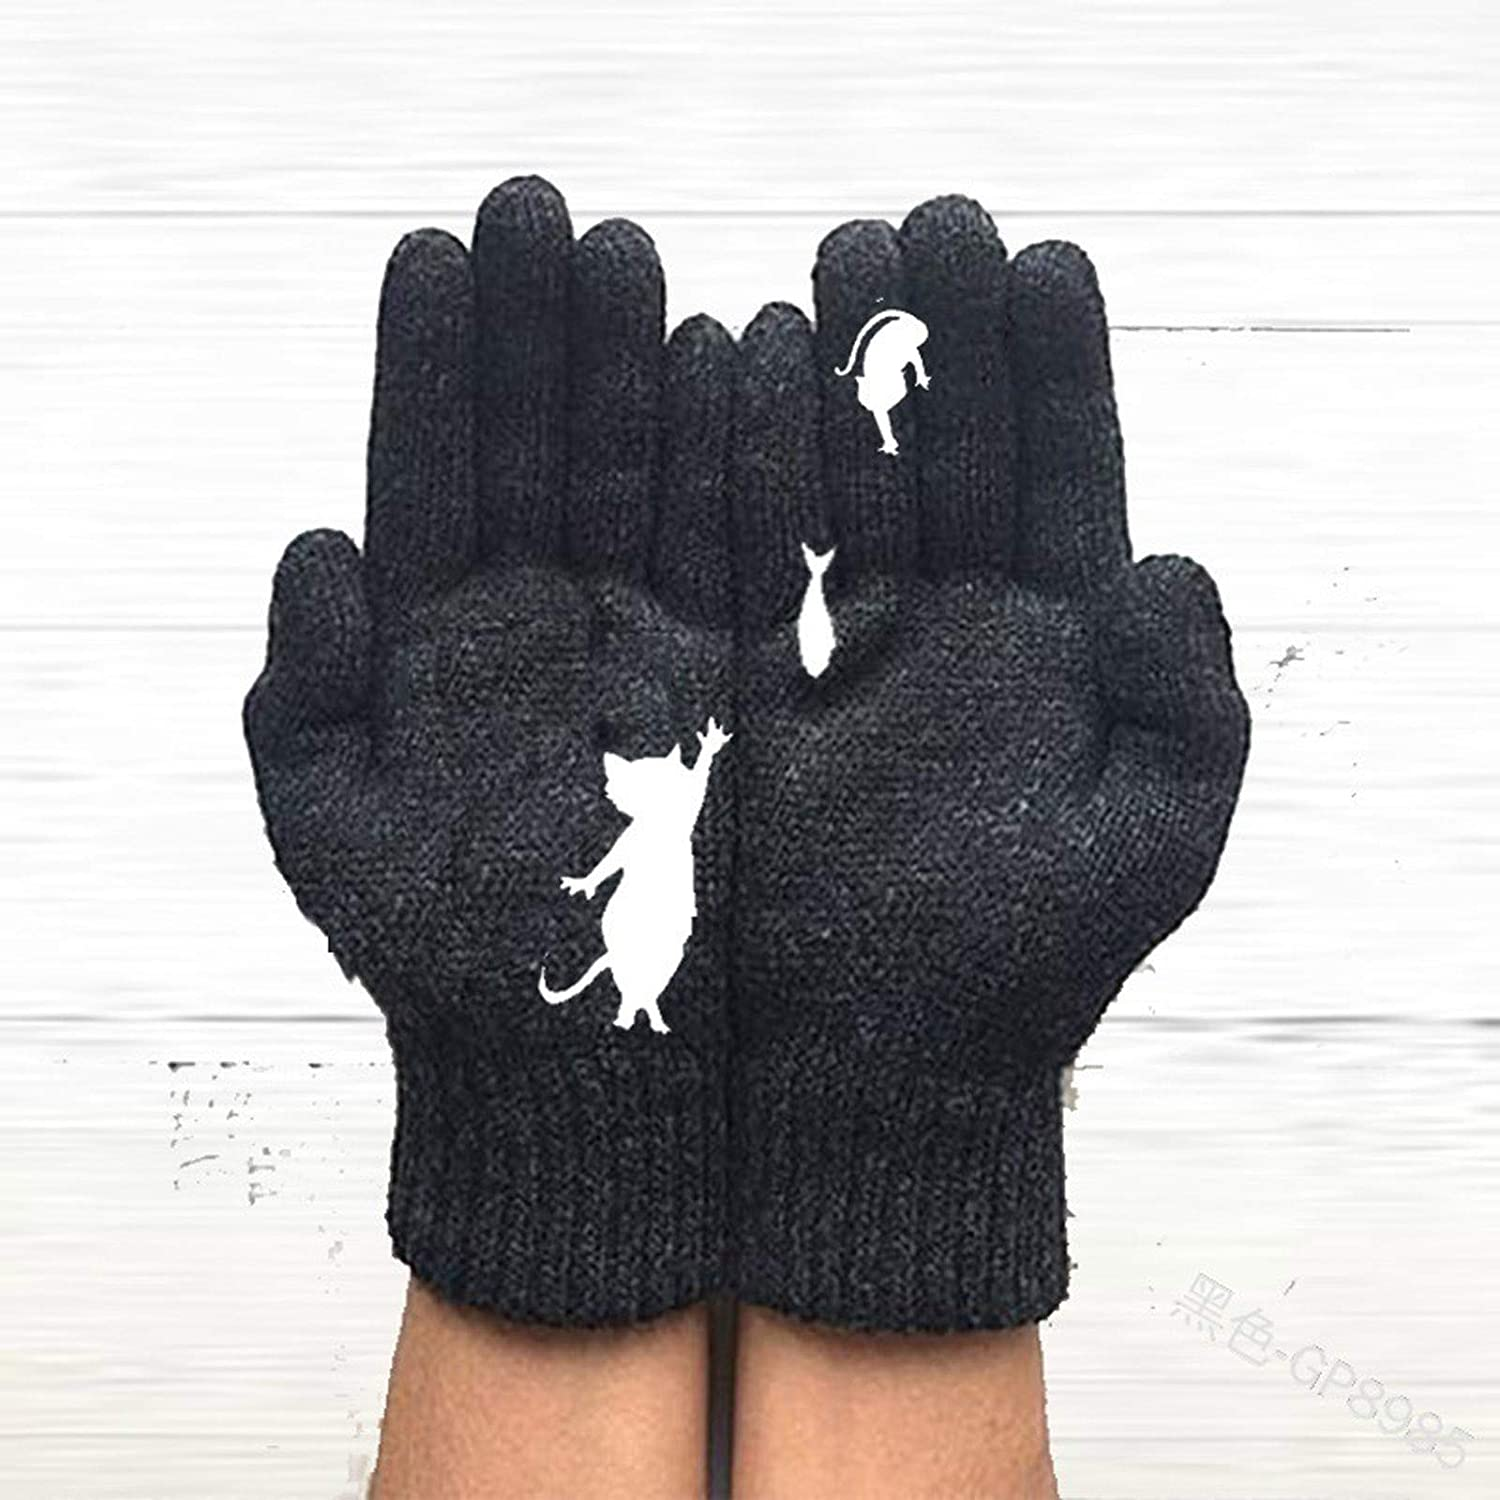 jayotai Women's Winter Warm Gloves Thermal Gloves Wool Knitted Mittens Cat Dog Printing Gloves Finger/Fingerless Ladies Girls Gloves for Cold Weather Outdoor Warm